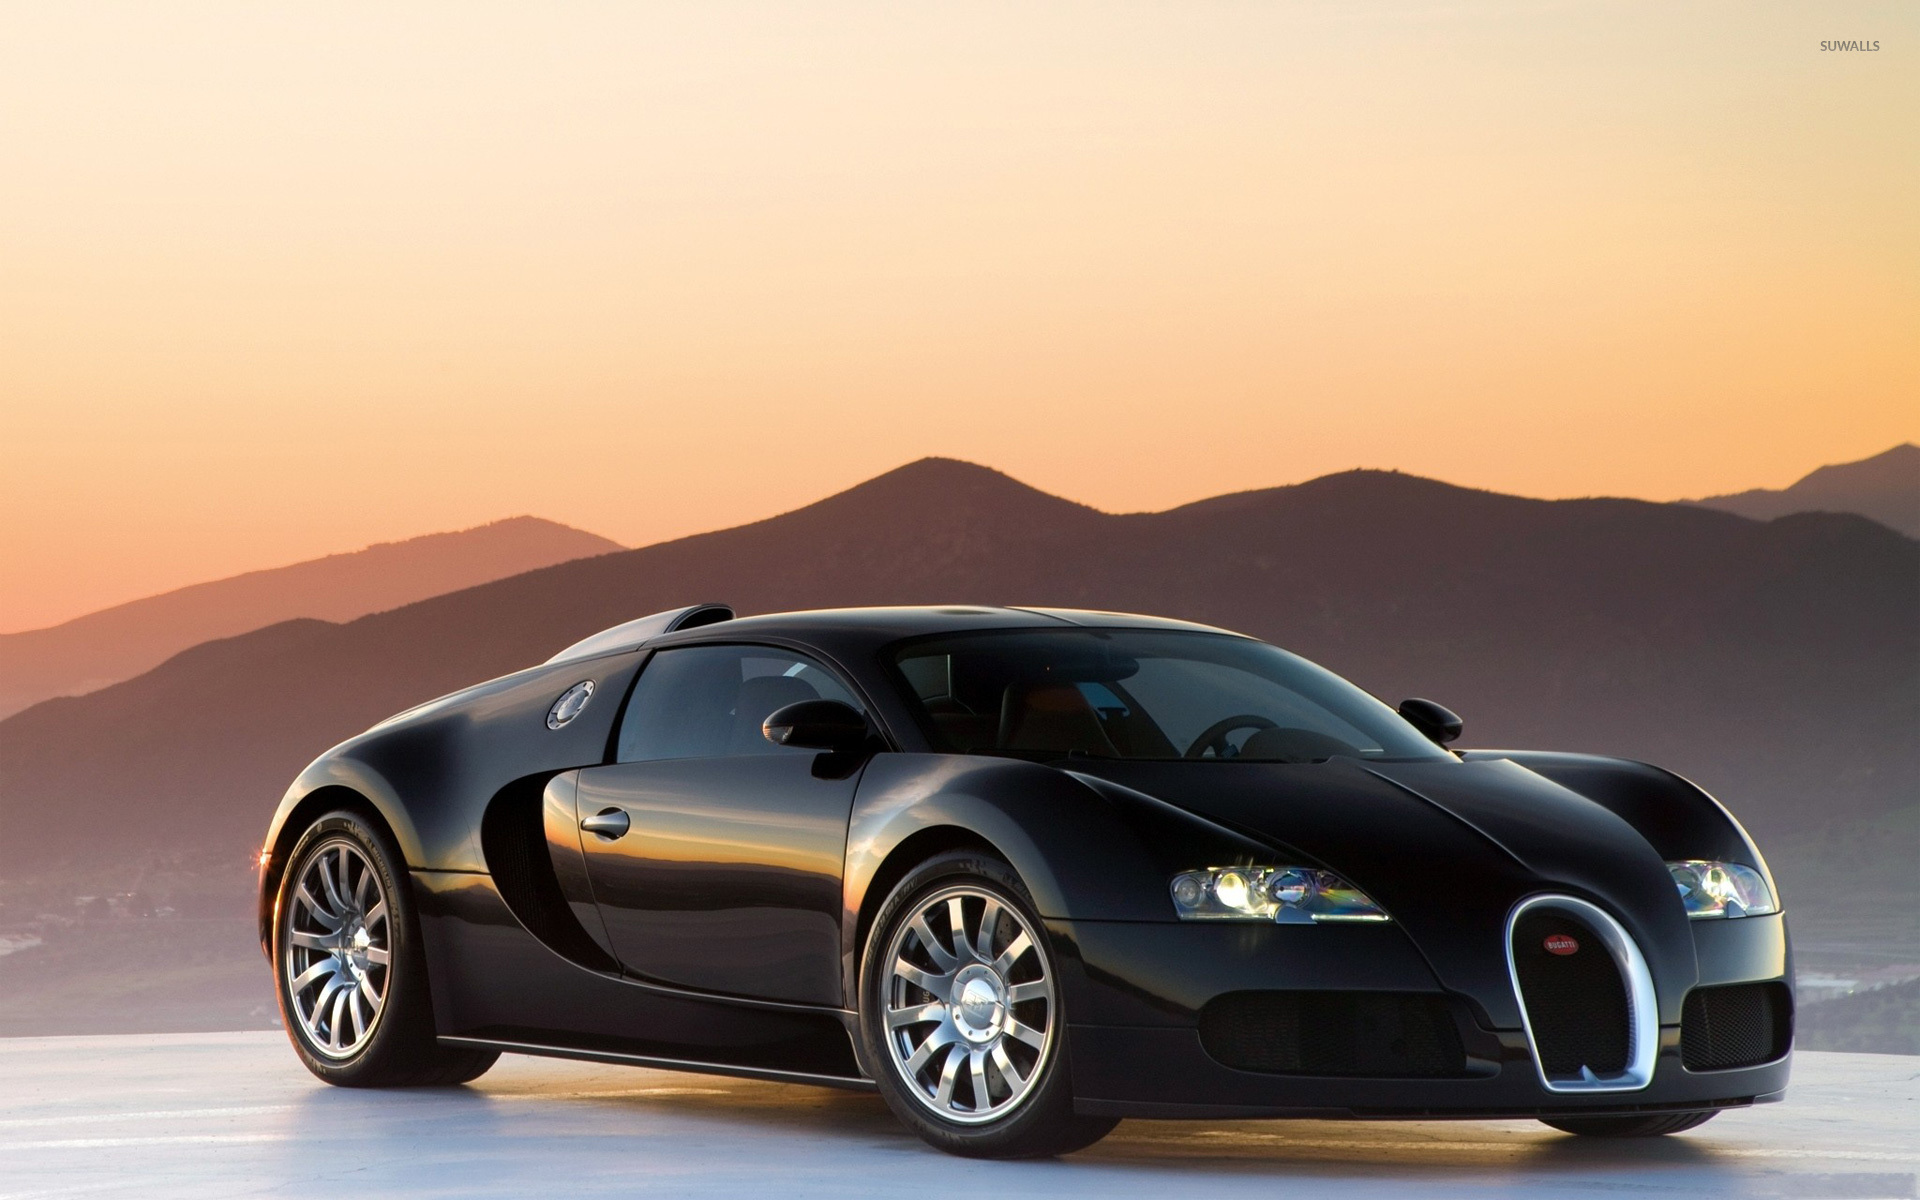 bugatti veyron eb 16 4 6 wallpaper car wallpapers 7735. Black Bedroom Furniture Sets. Home Design Ideas